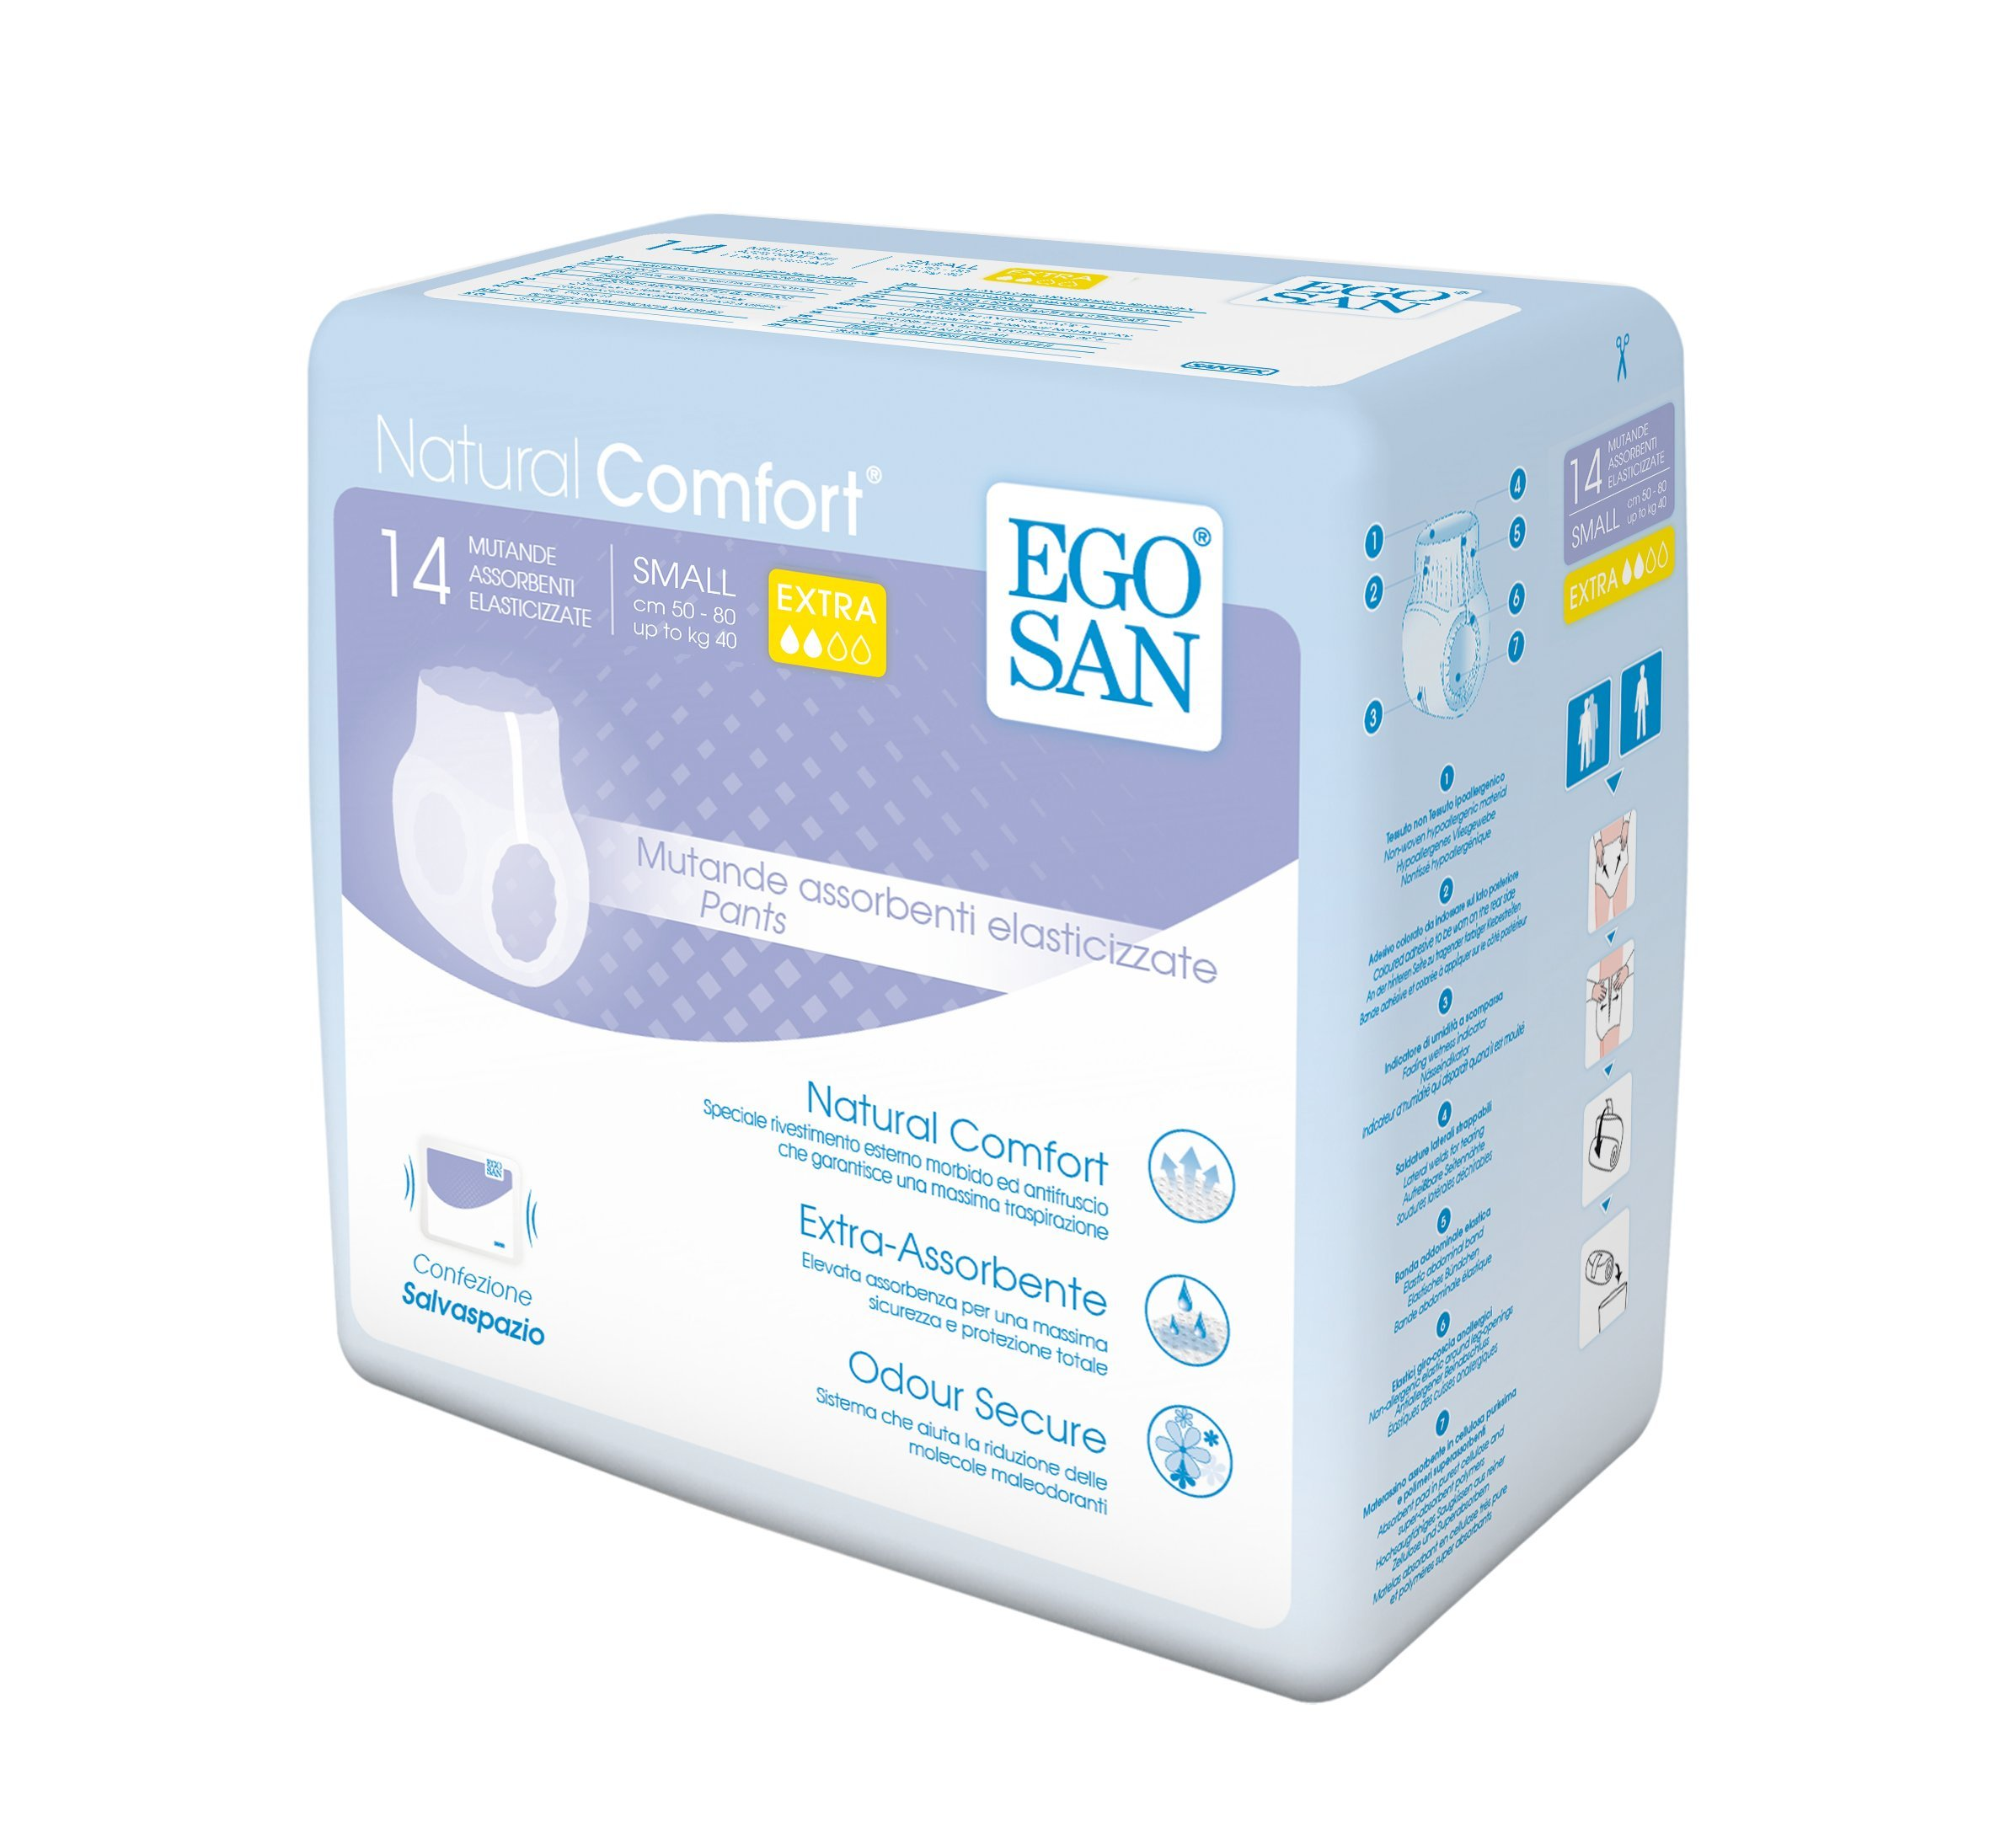 EGOSAN Extra Incontinence Adult Pull Up Underwear Adult Diapers with Stretchable Waistband, Maximum Absorbency for Active Men and Women (Small, 14 Diapers)